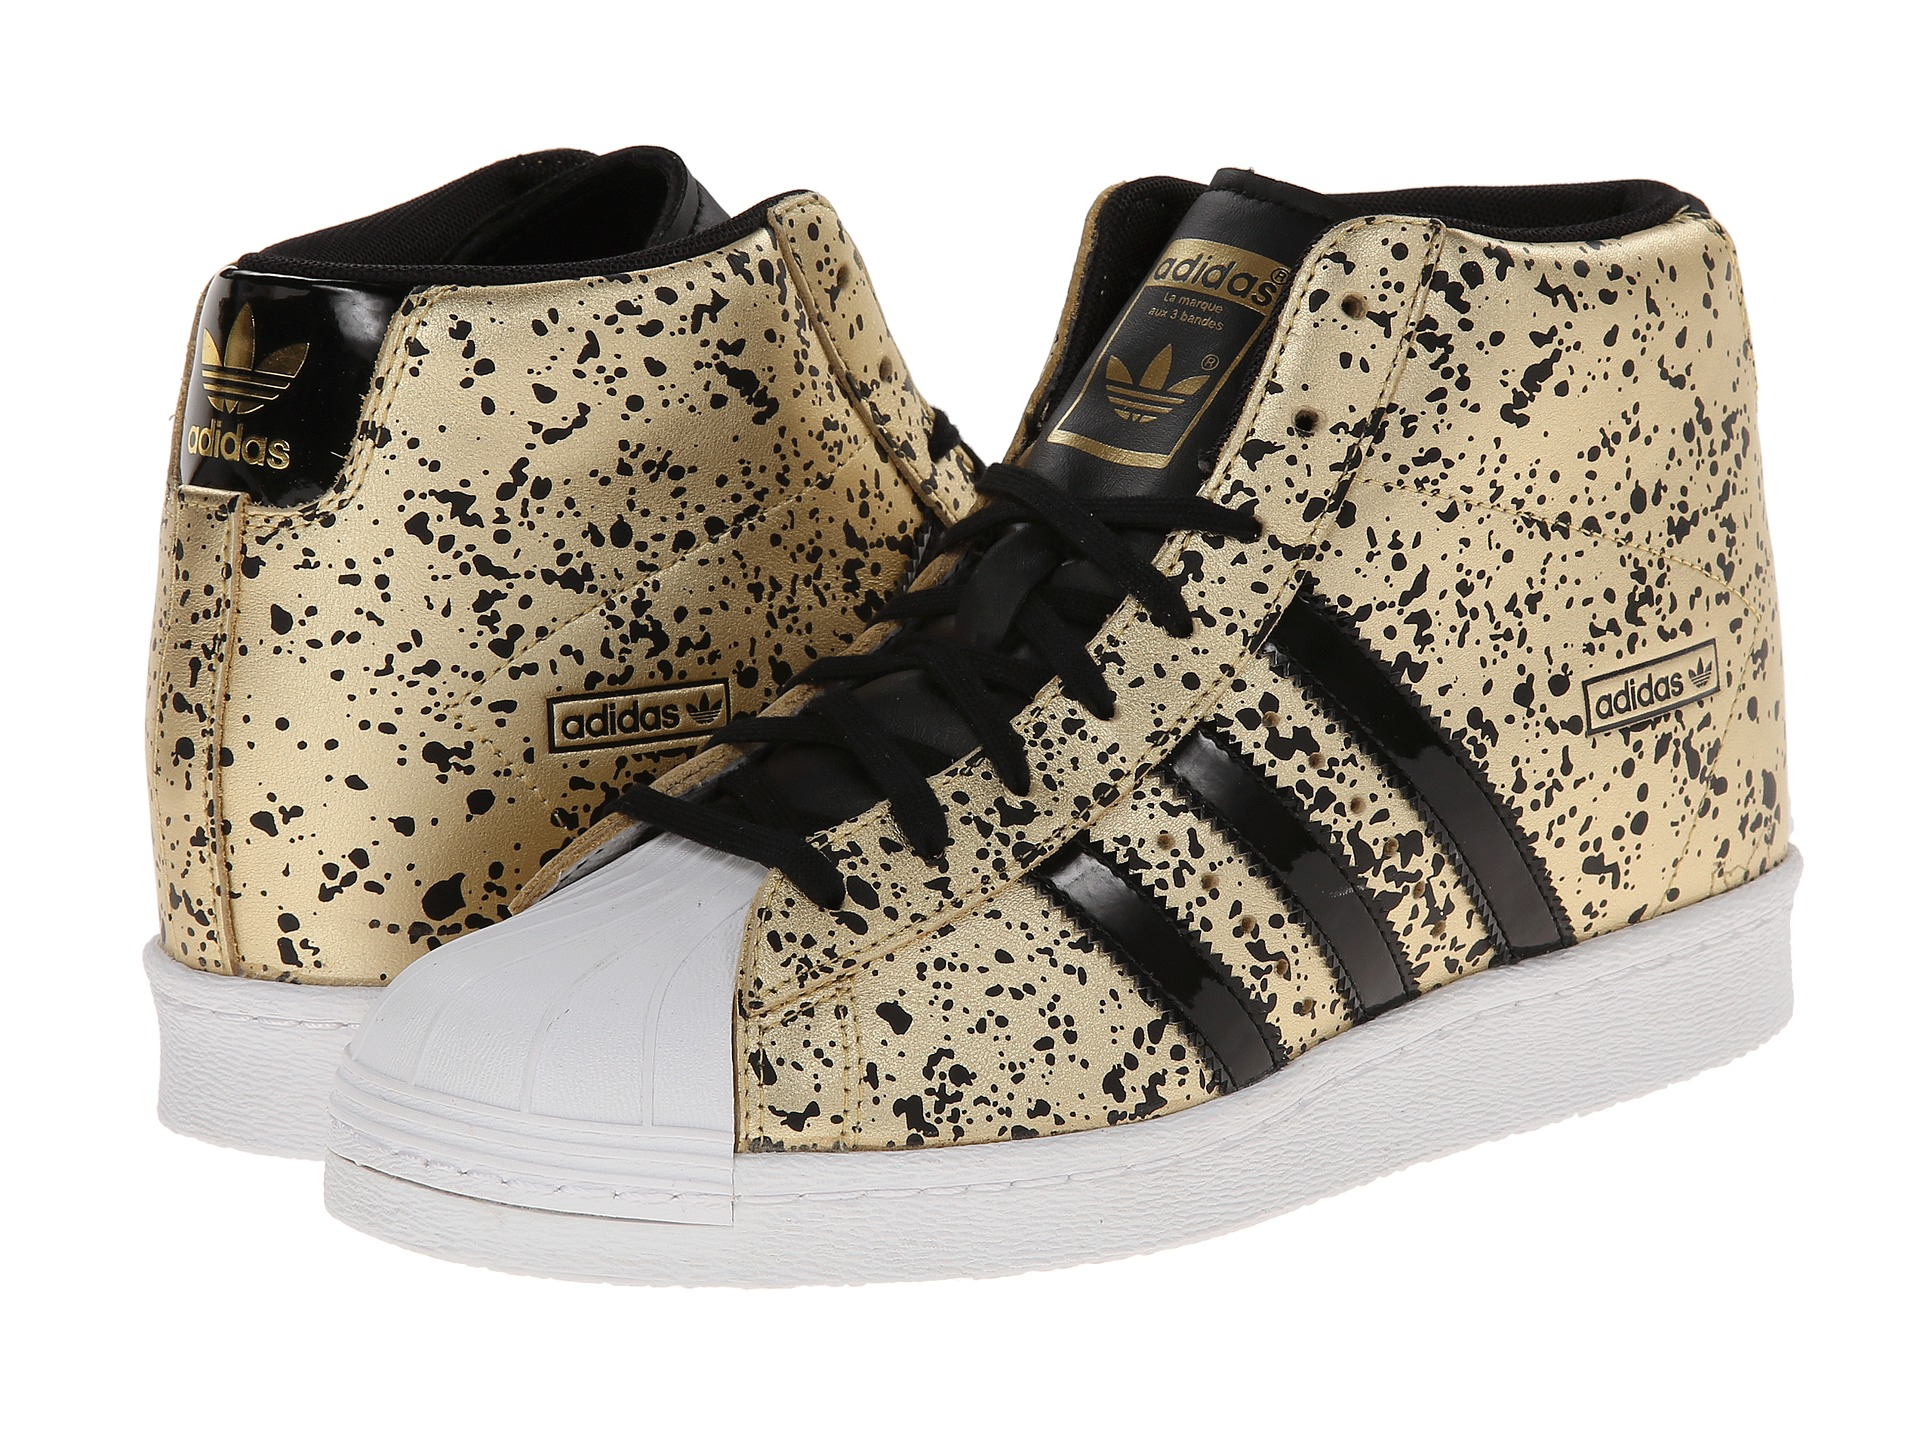 Adidas Originals Superstar Up W [S79382] Women Casual Wedge